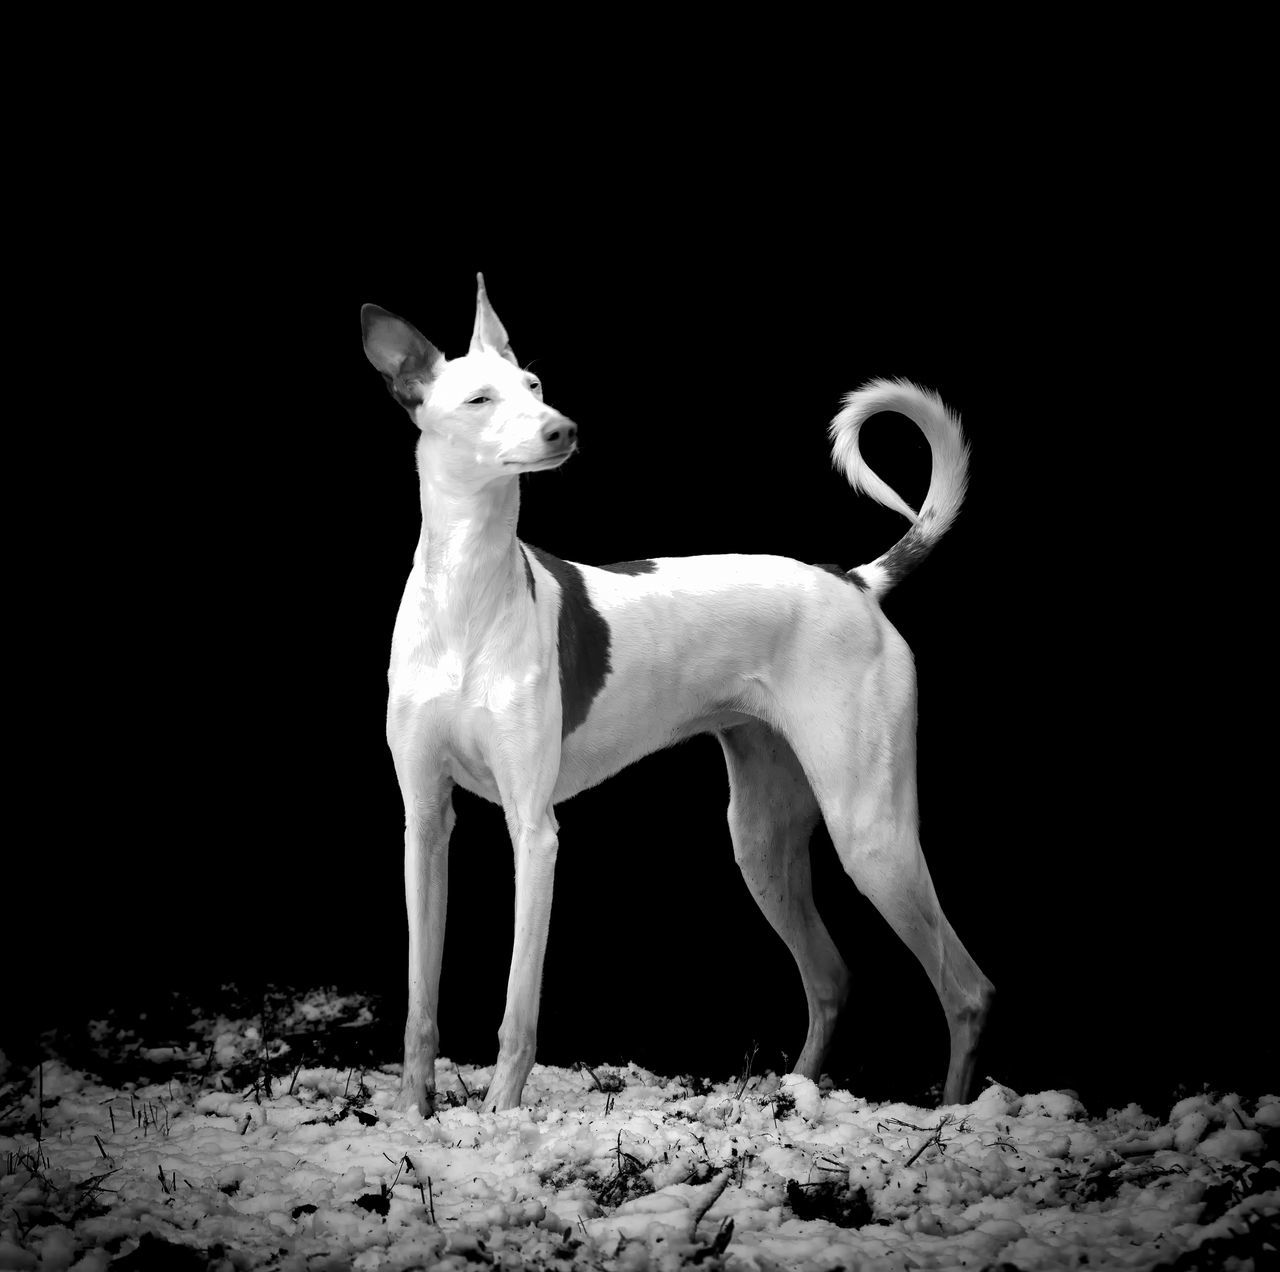 Animal Themes Beautiful Black Background Dog Ibizan Hound Mammal Night No People Outdoors Podenco Ibicenco